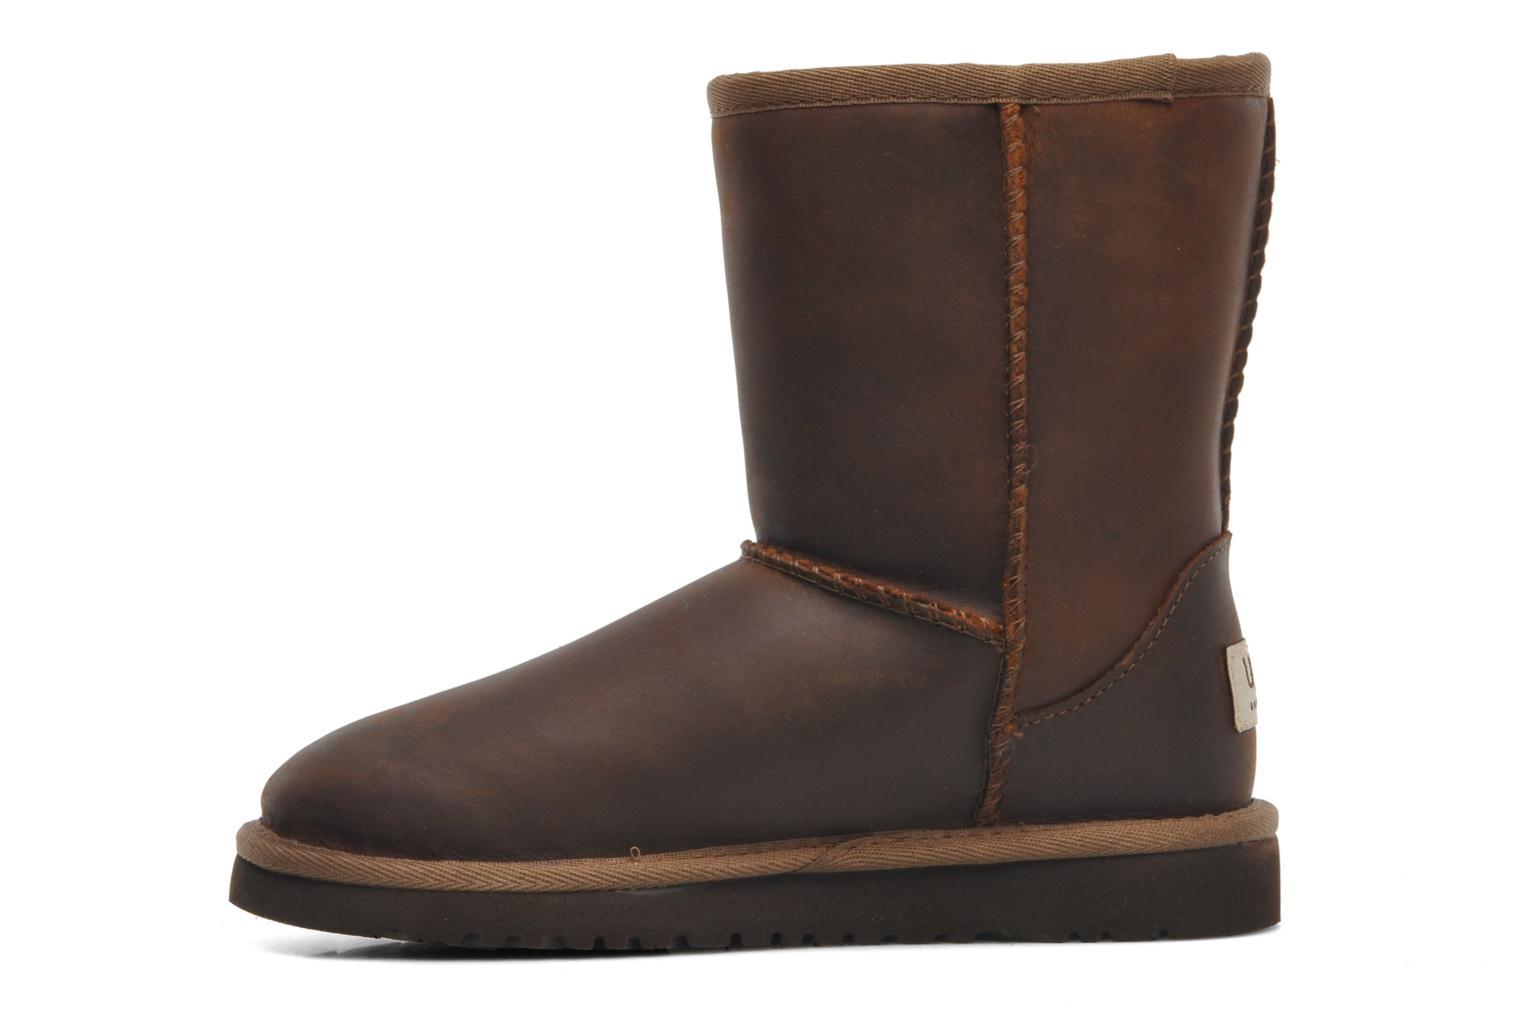 Ugg Australia K Classic Short Leather Ankle boots in Brown ...